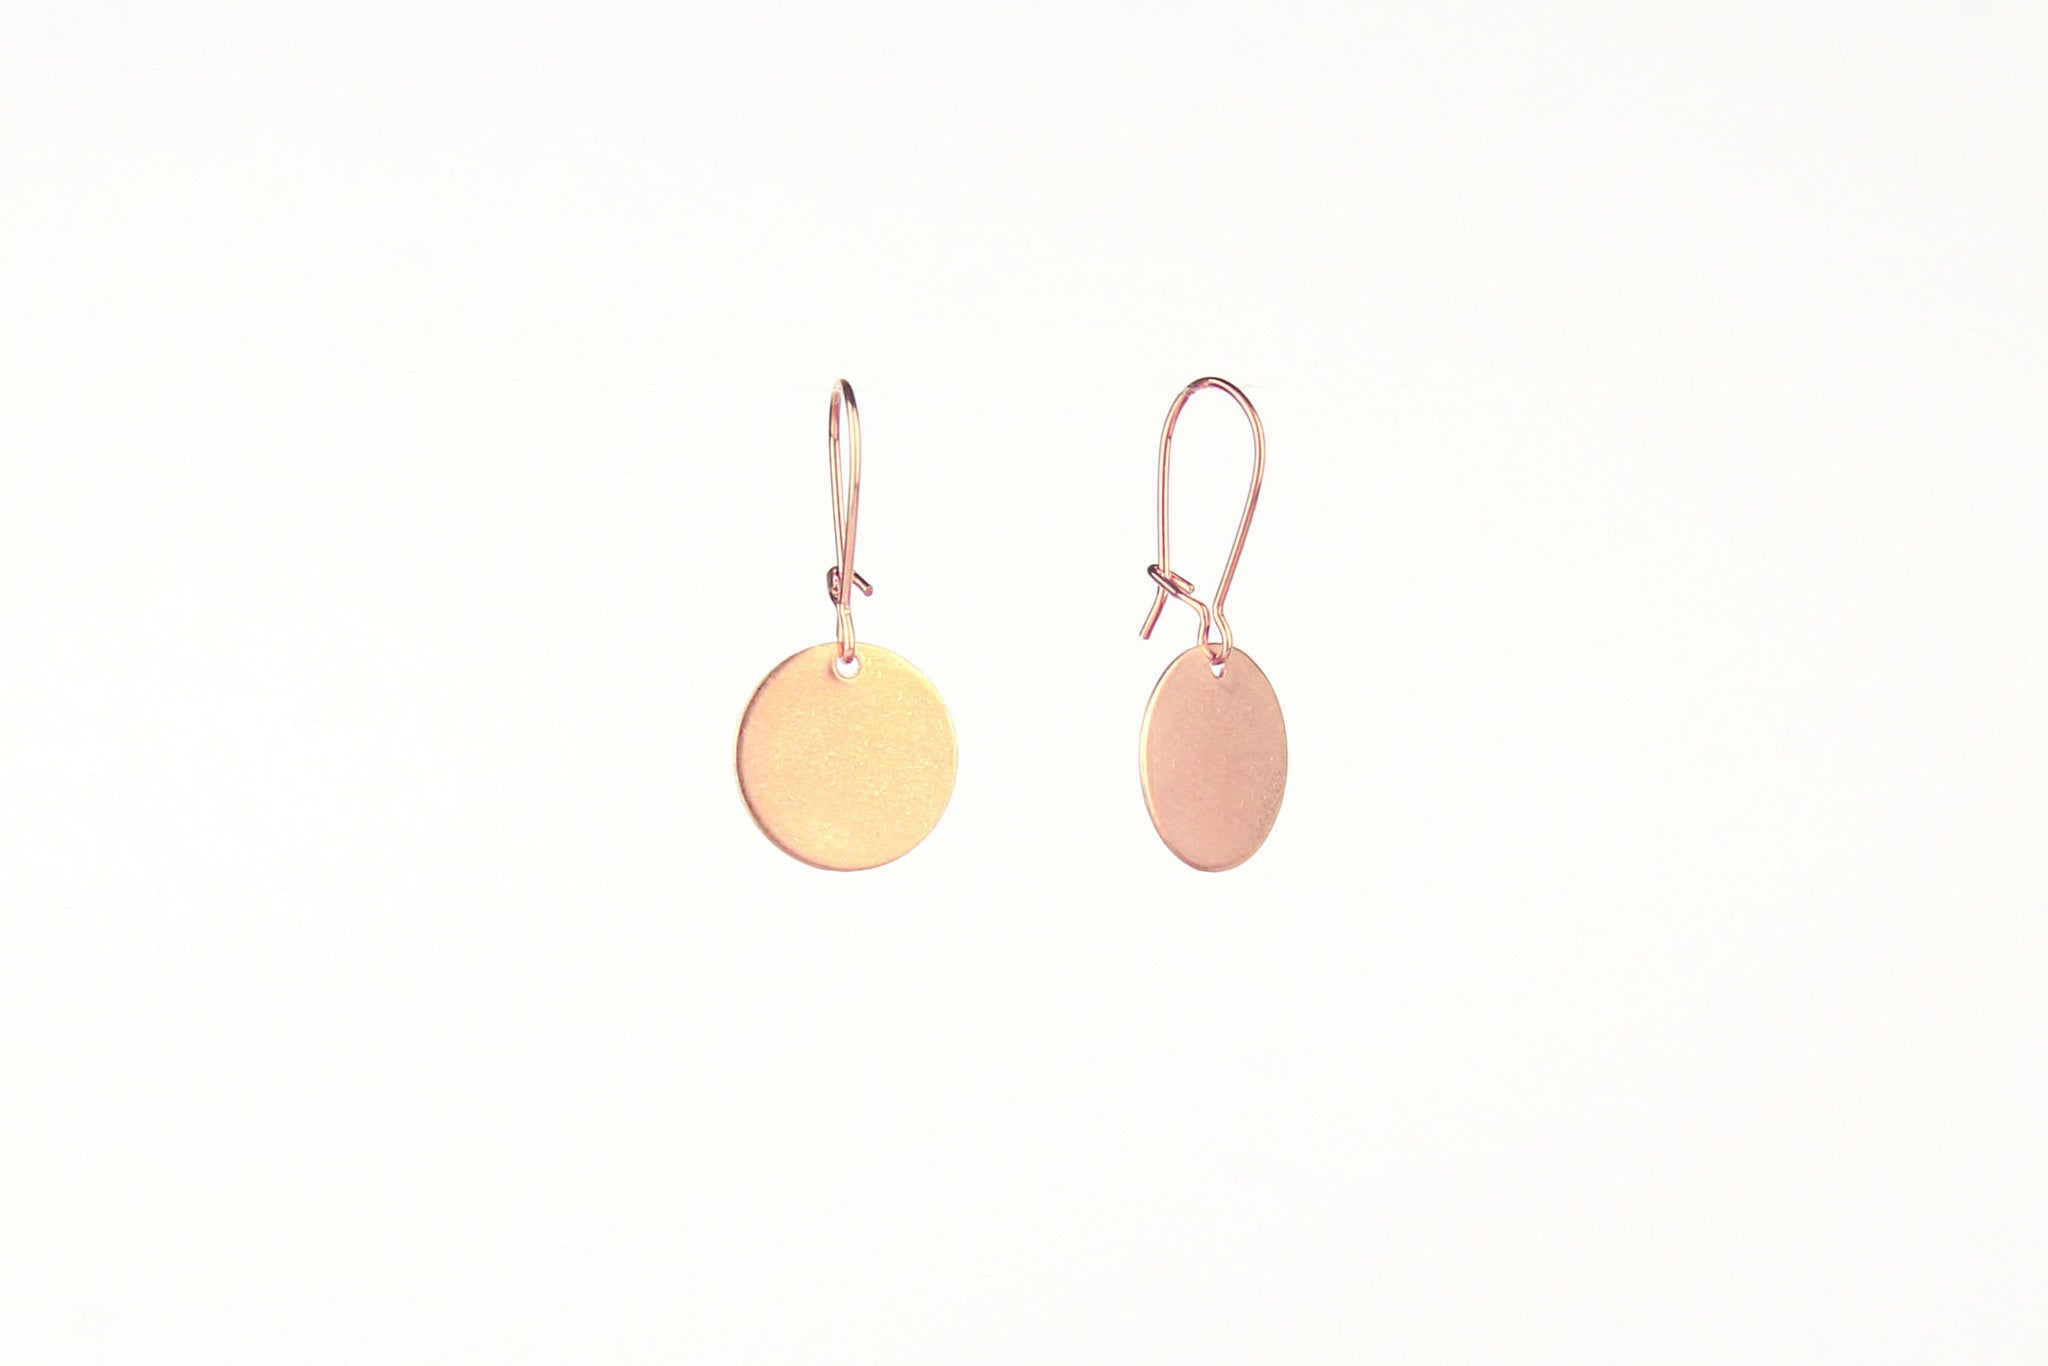 jewelberry ohrringe earrings medium disc rose gold plated sterling silver fine jewelry handmade with love fairtrade